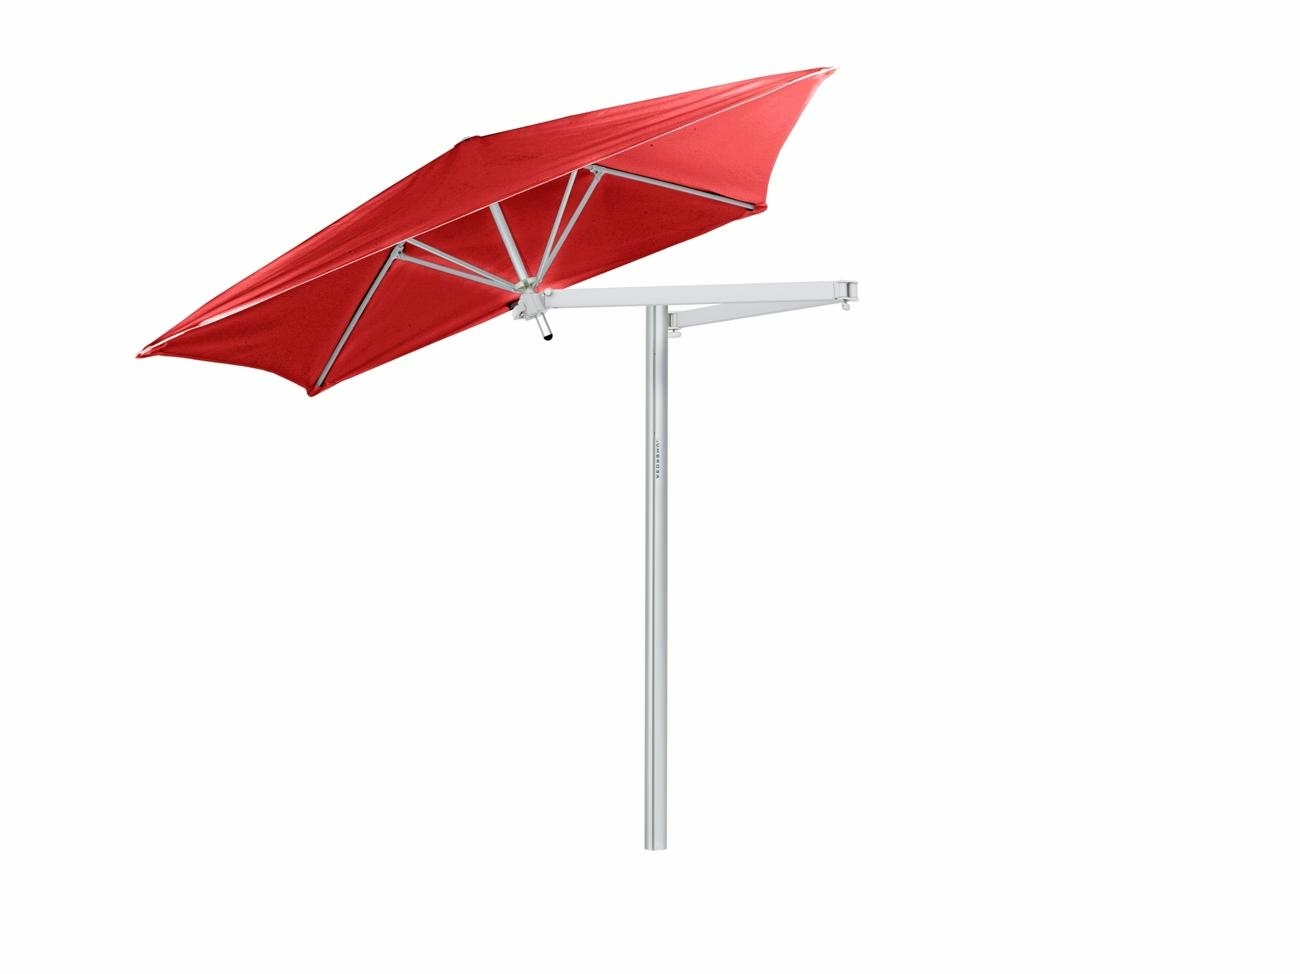 Paraflex cantilever umbrella square 1,9 m with Pepper fabric and a Neo arm